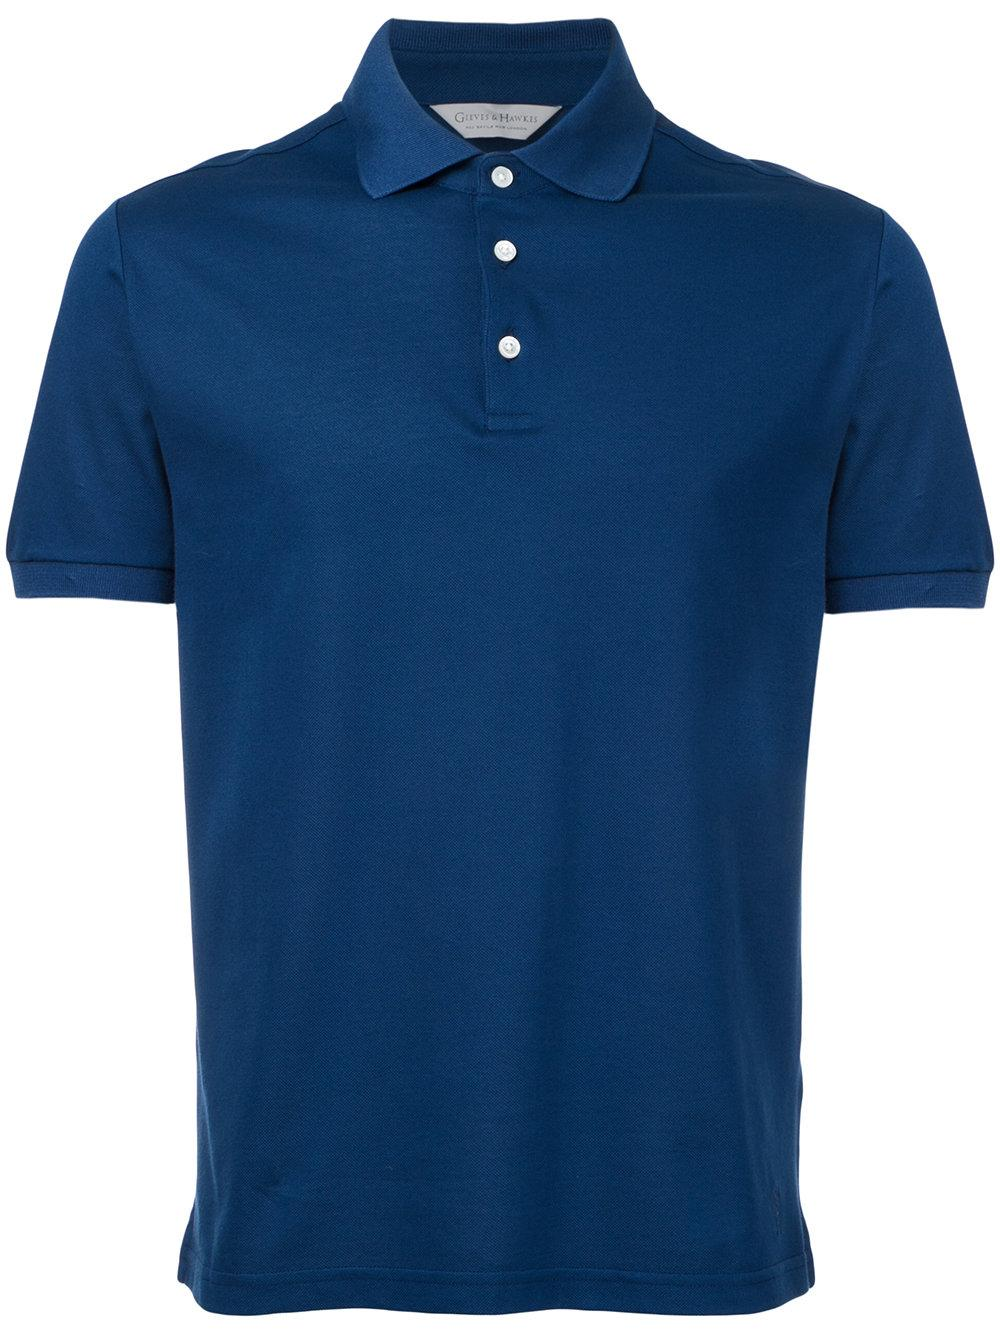 Gieves hawkes button up polo shirt in blue for men lyst for No button polo shirts